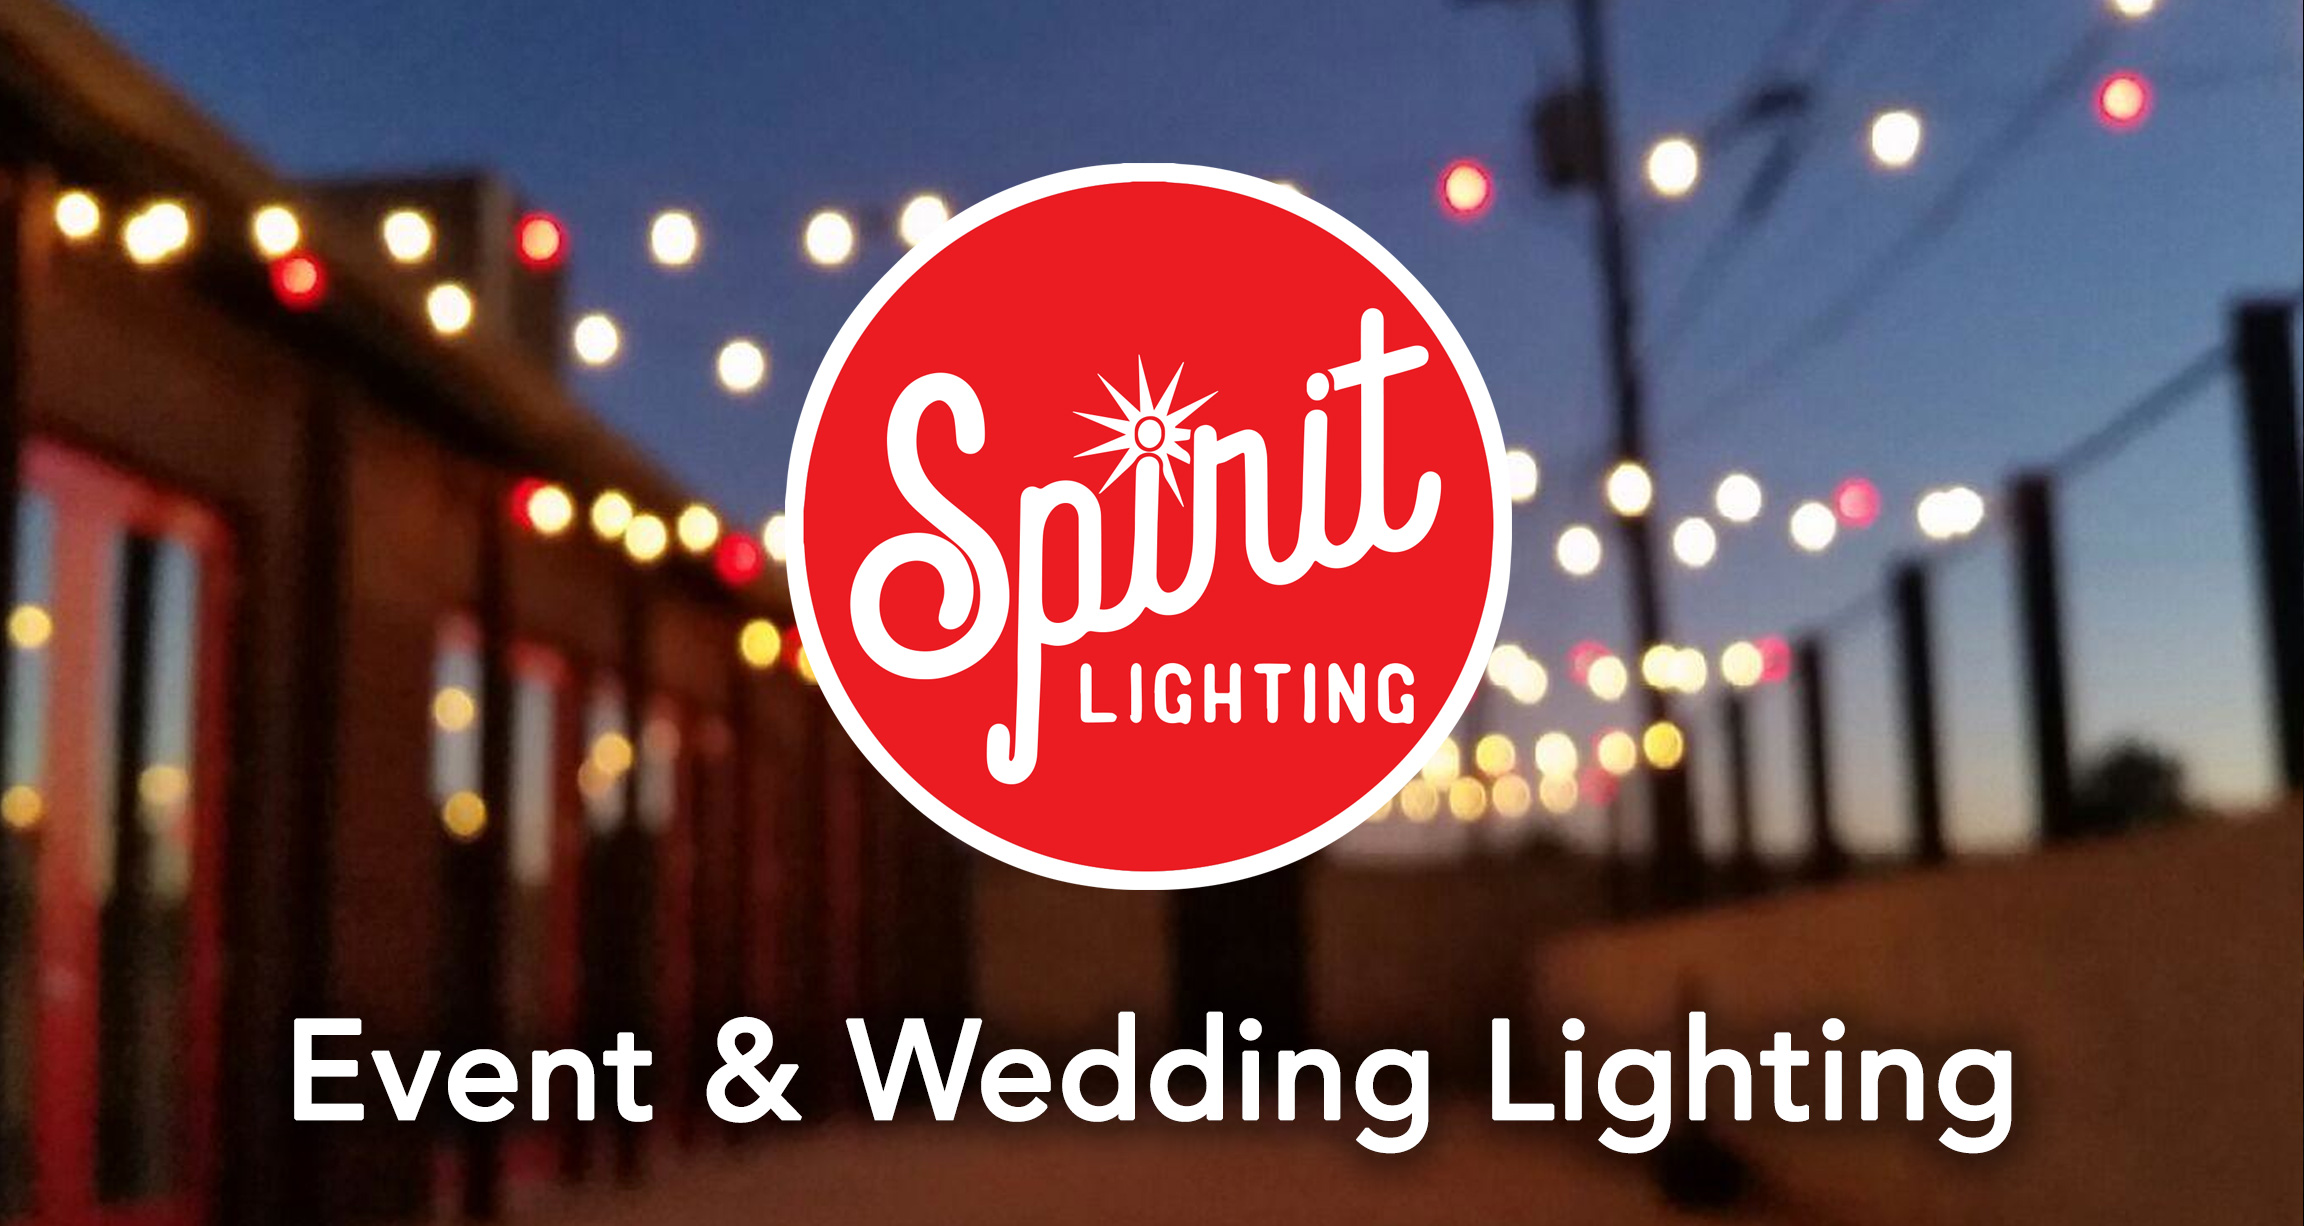 SPIRIT LIGHTING WILL DESIGN A DISPLAY FOR YOUR EVENT THAT BALANCES FUNCTION AND FESTIVENESS.